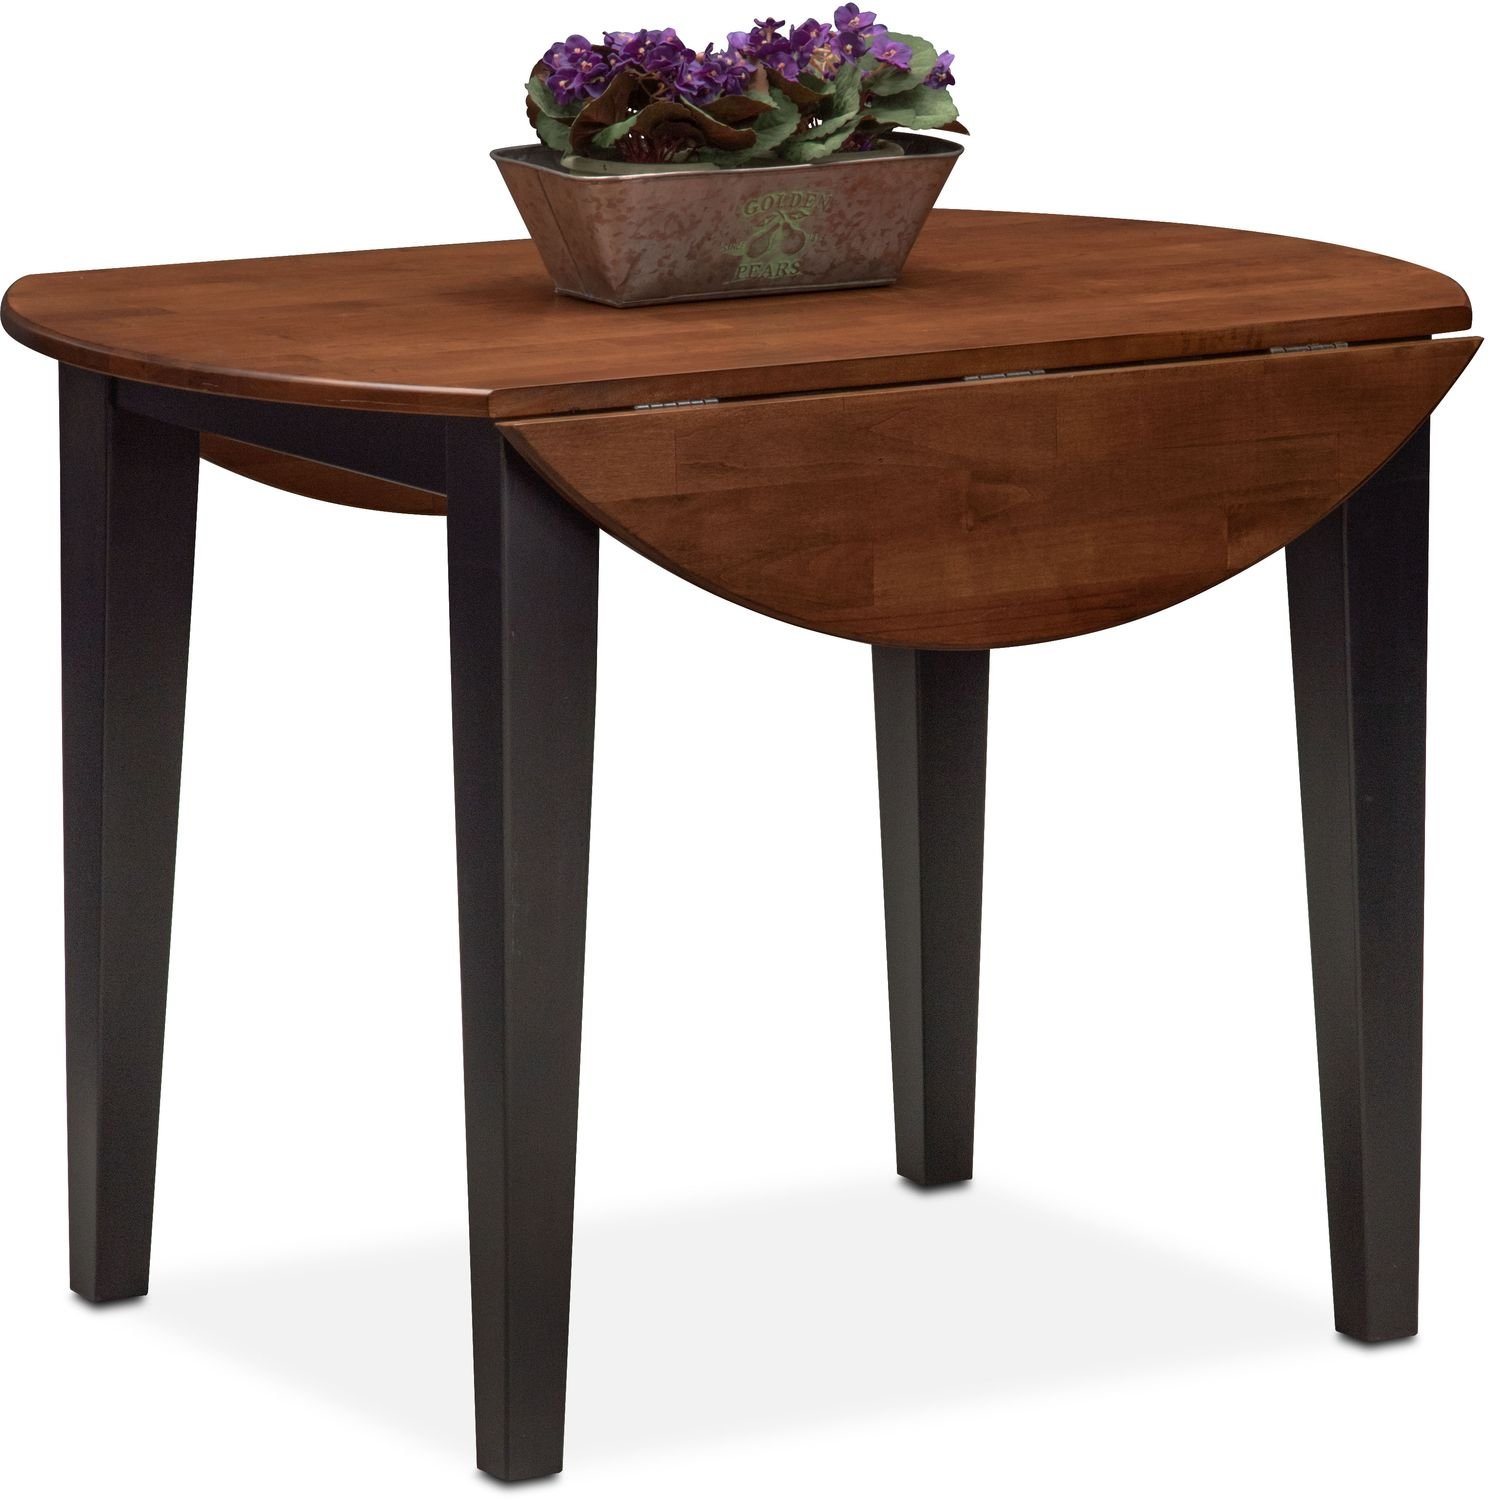 Nantucket Drop Leaf Table Black And Cherry American